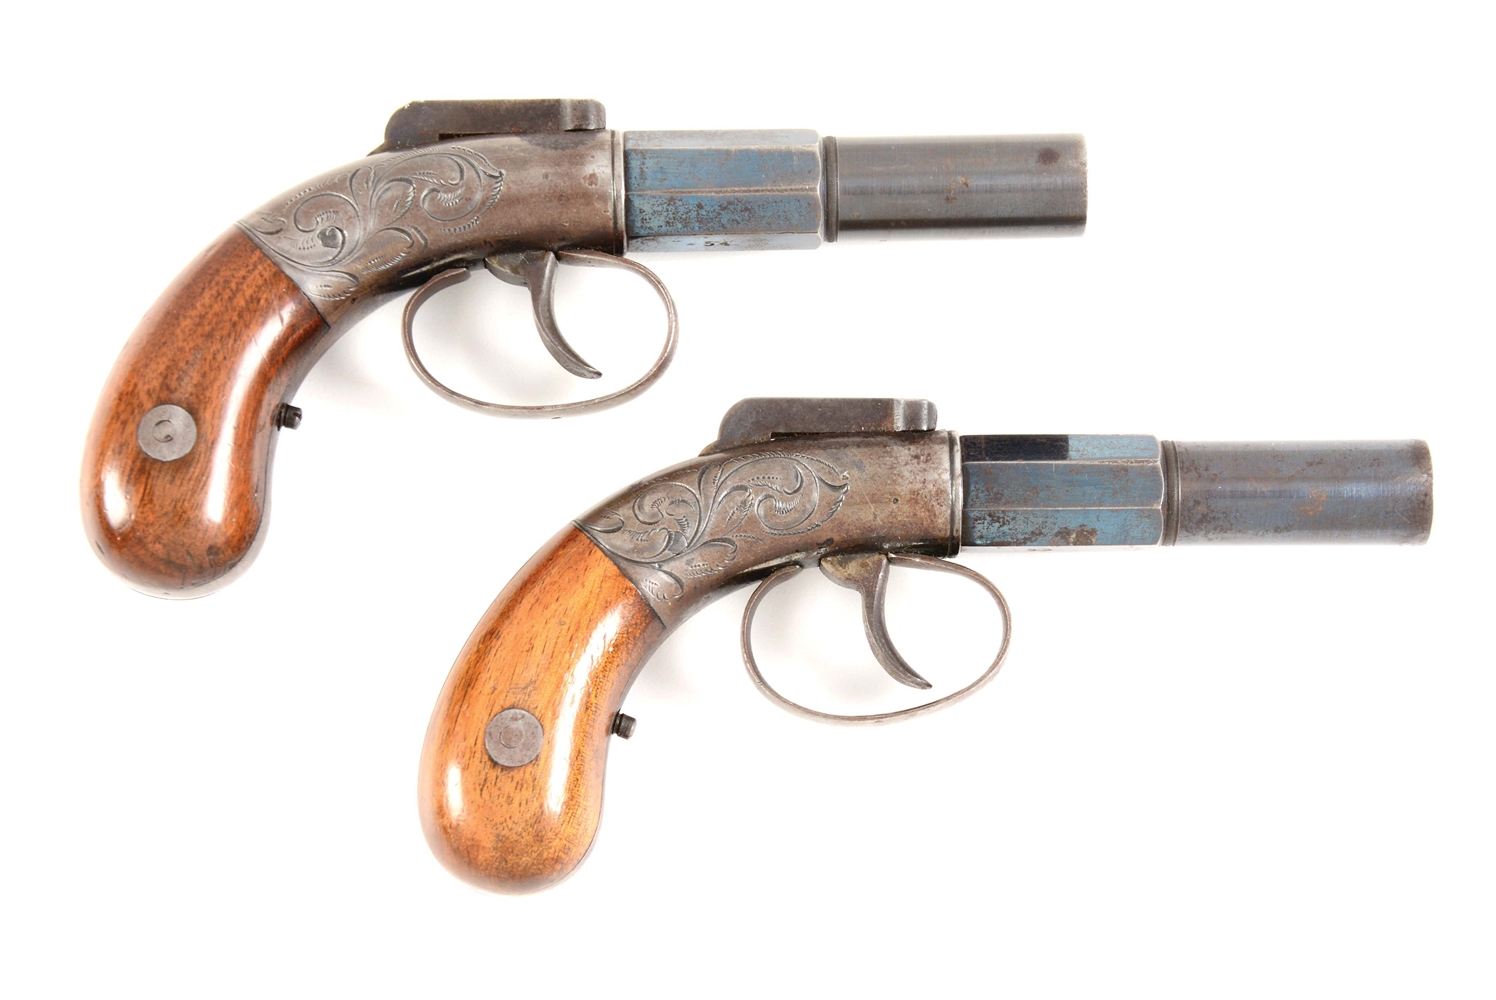 (A) CONSECUTIVE PAIR OF ALLEN AND THURBER SINGLE SHOT PERCUSSION BAR HAMMER PISTOLS.